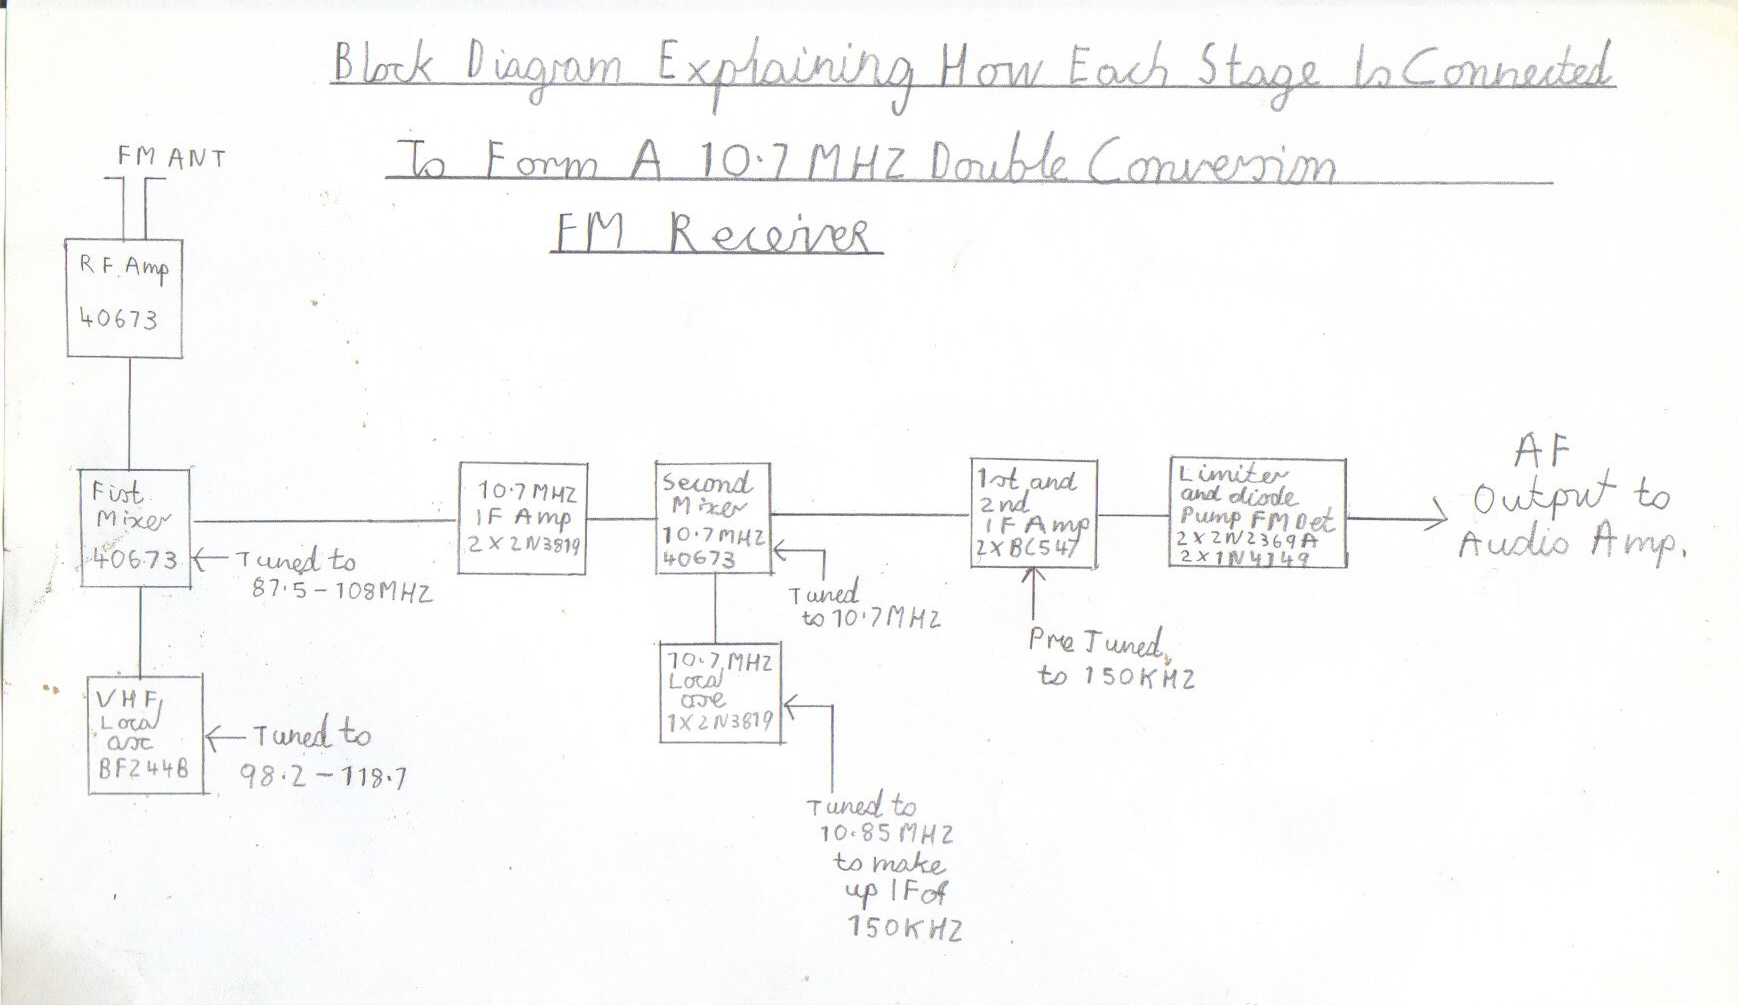 hight resolution of block diagram of how each stage is supposed to be connected up to form a 10 7mhz double conversion fm receiver